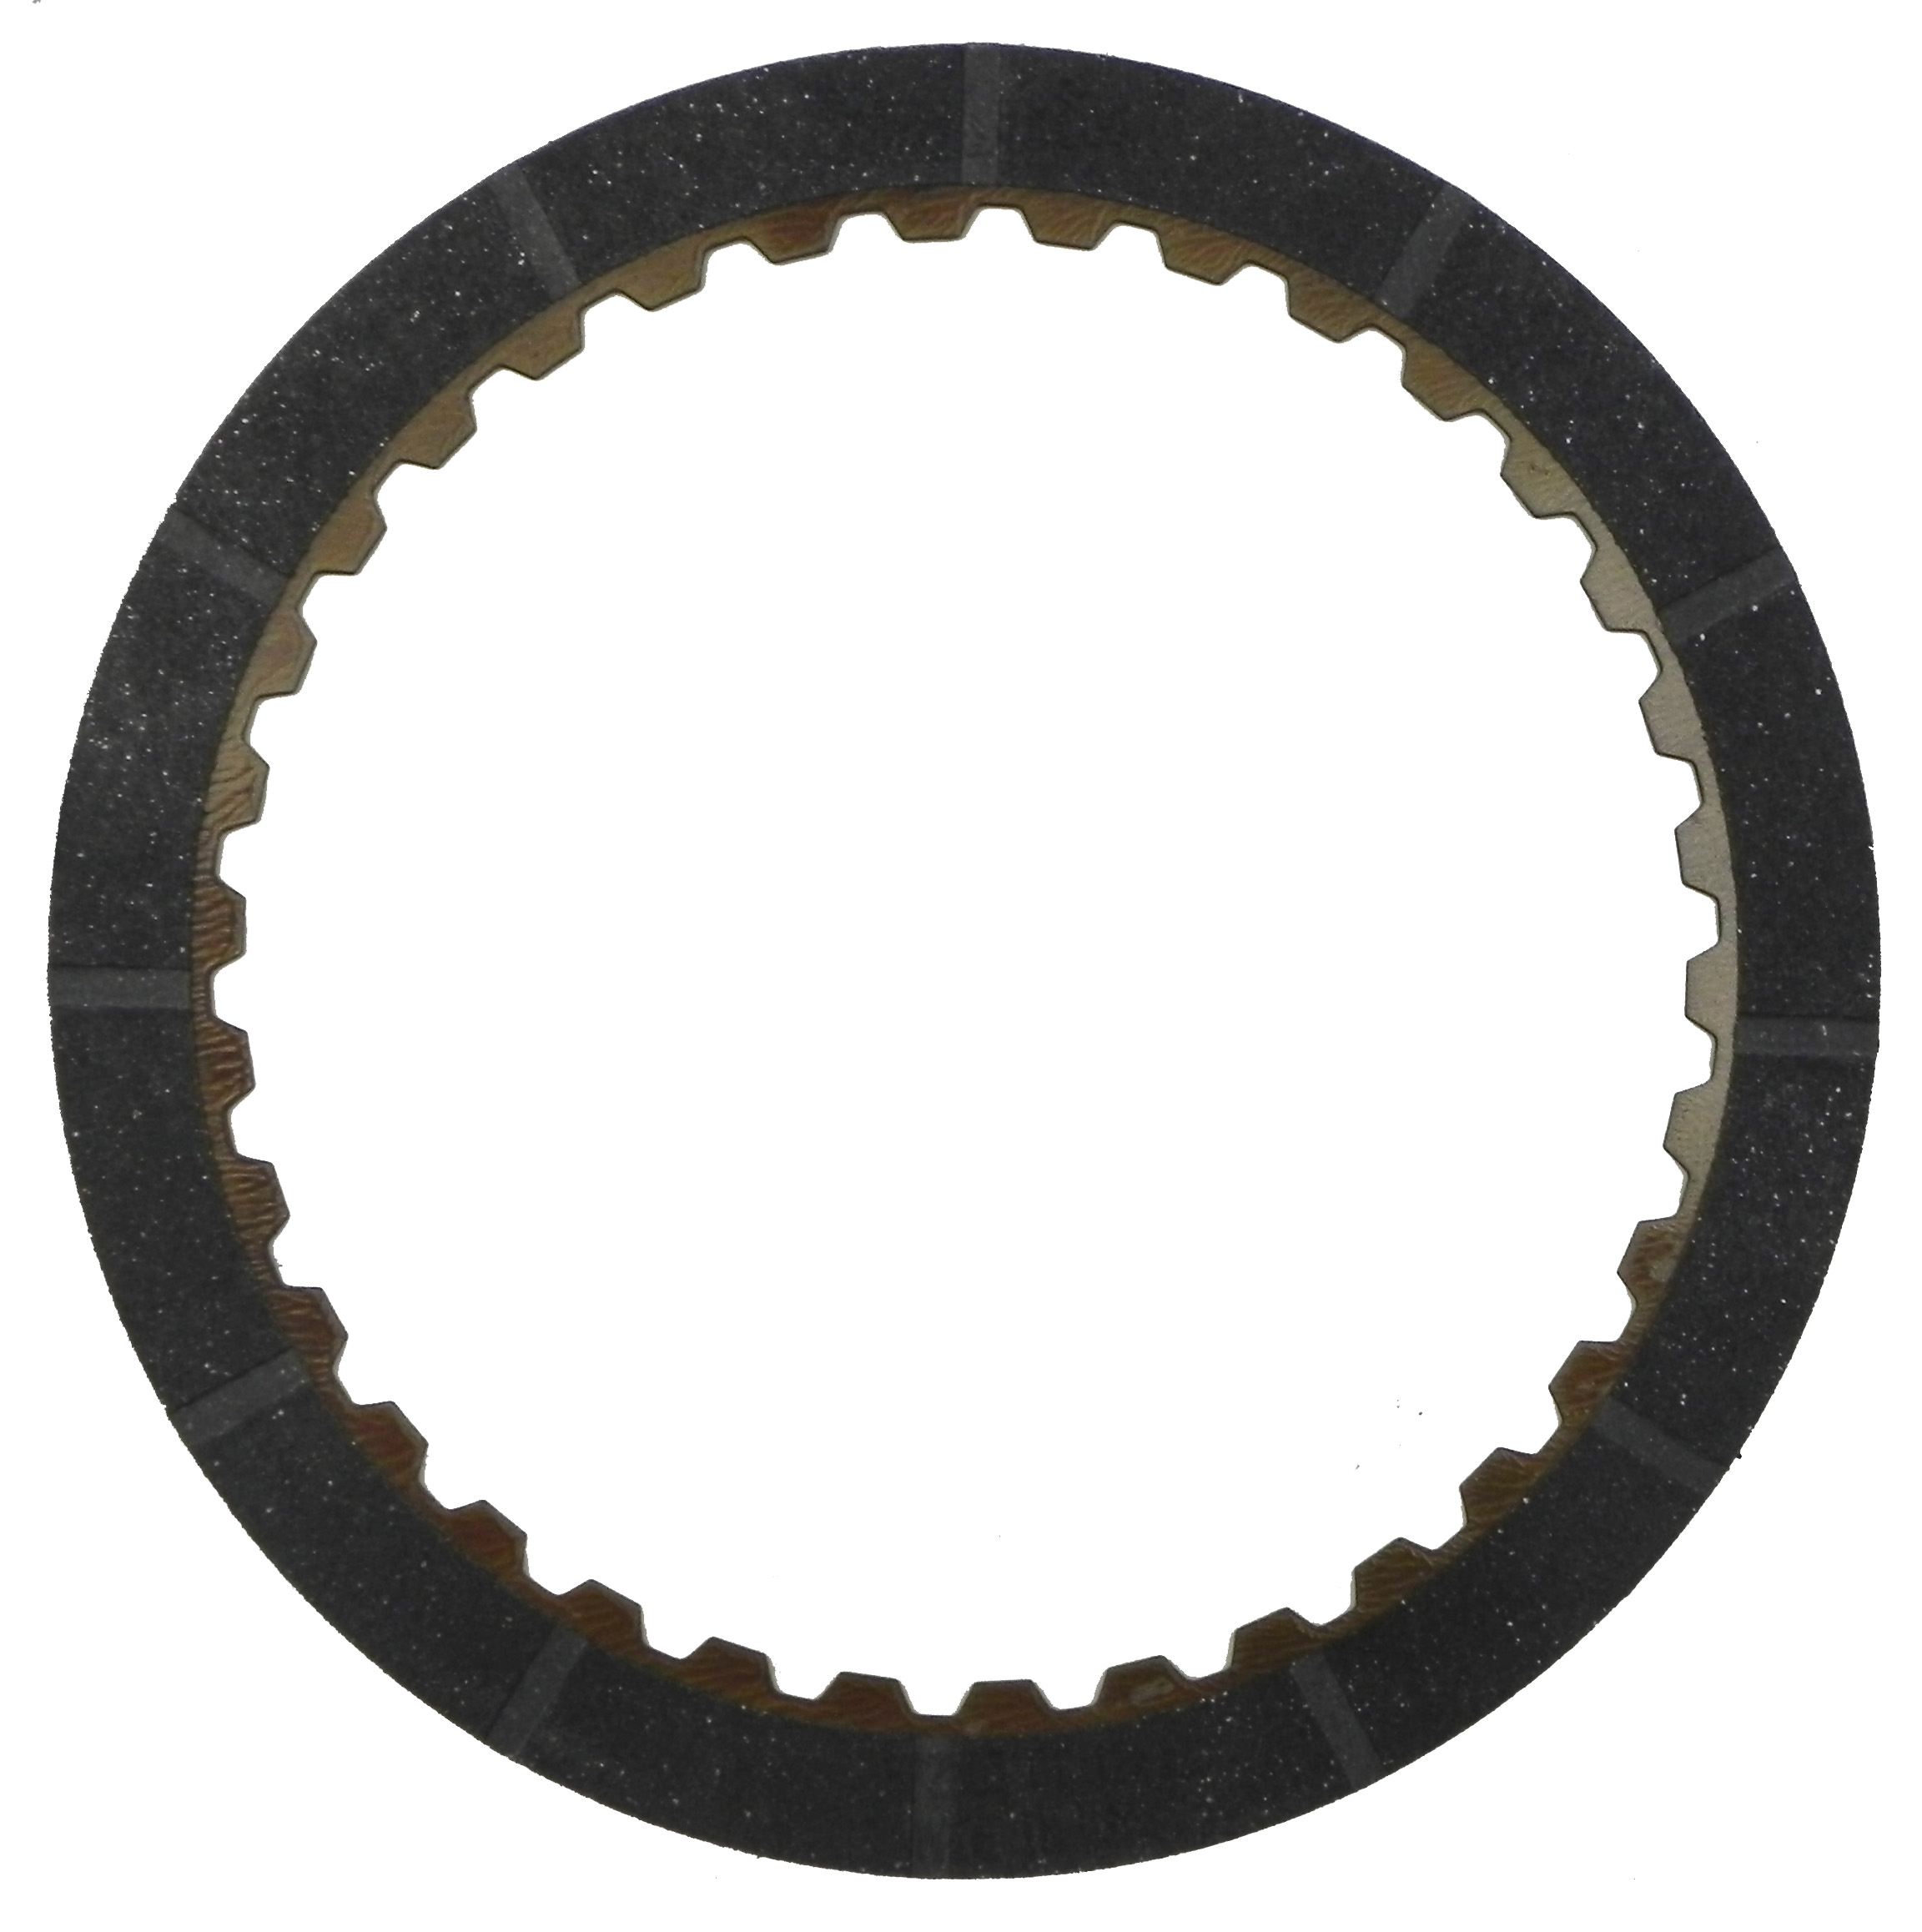 R572505 | 1999-2007 Friction Clutch Plate High Energy C2 Direct High Energy